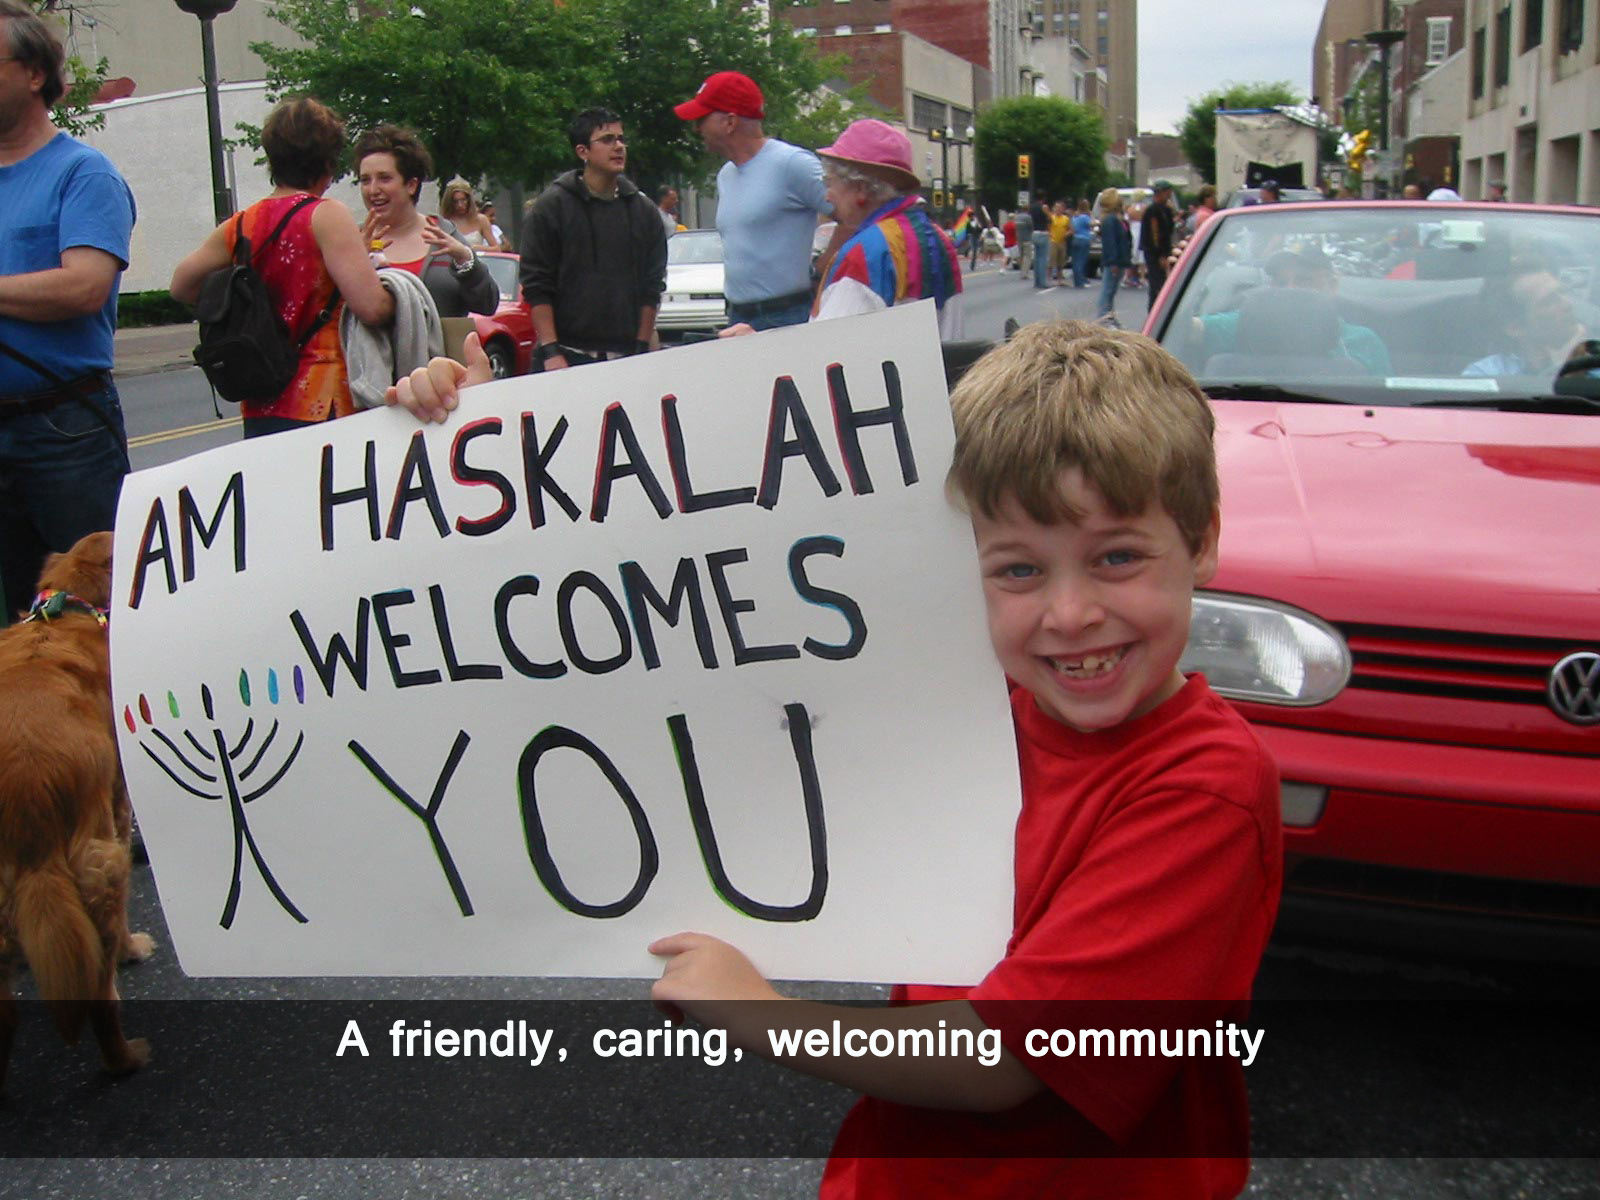 A friendly, caring, welcoming community